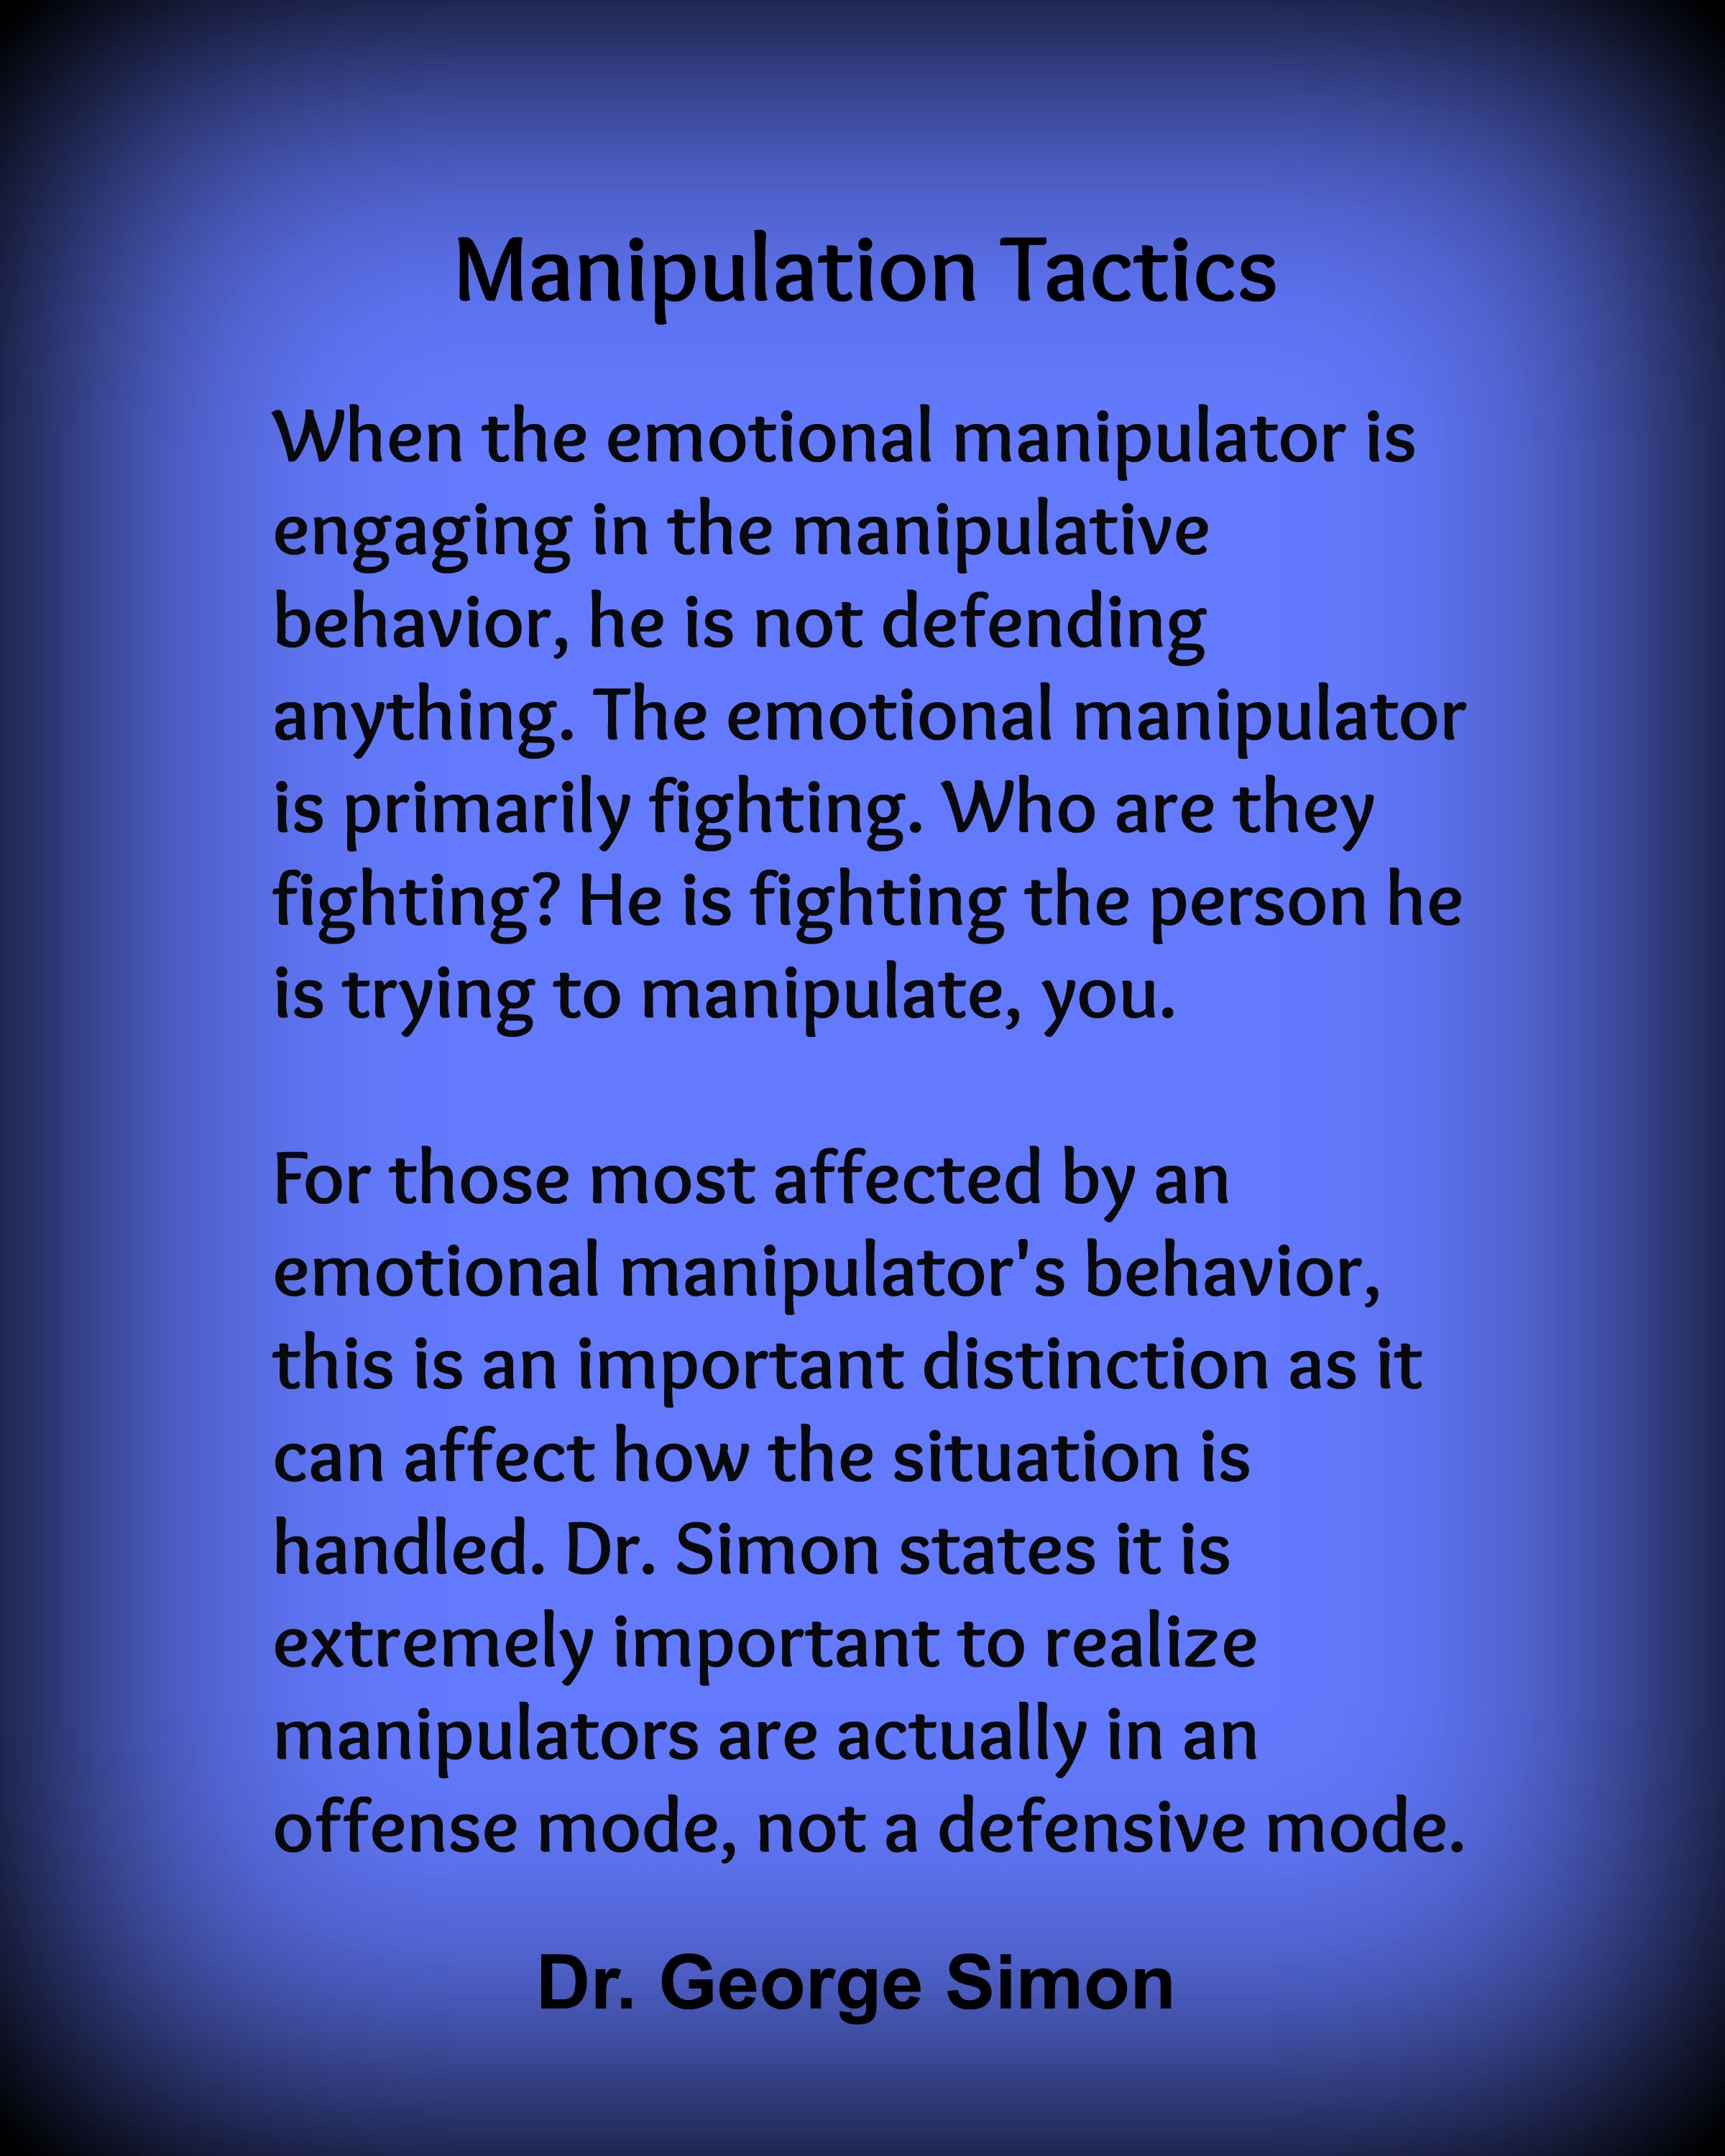 Emotional manipulator